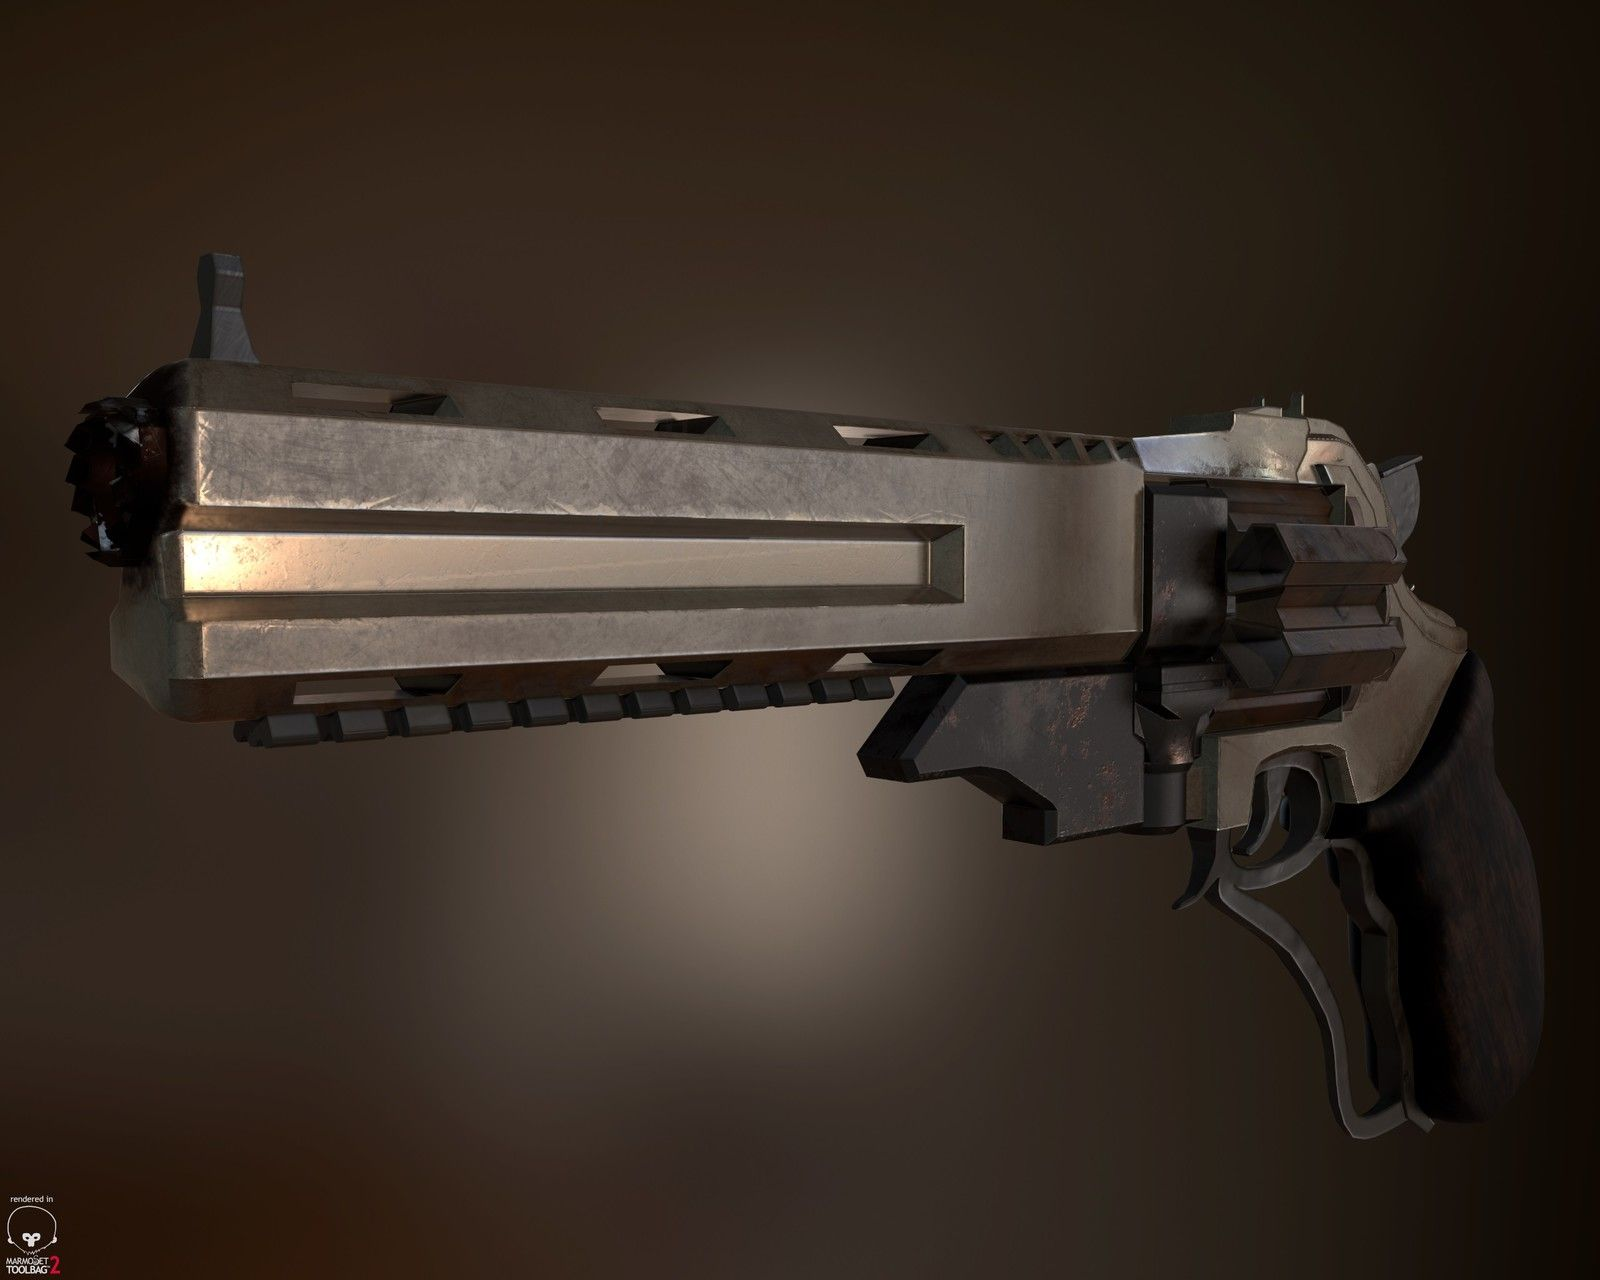 Mad Max Revolver Concept, Stefan Oprisan on ArtStation at https://www.artstation.com/artwork/ePQW6